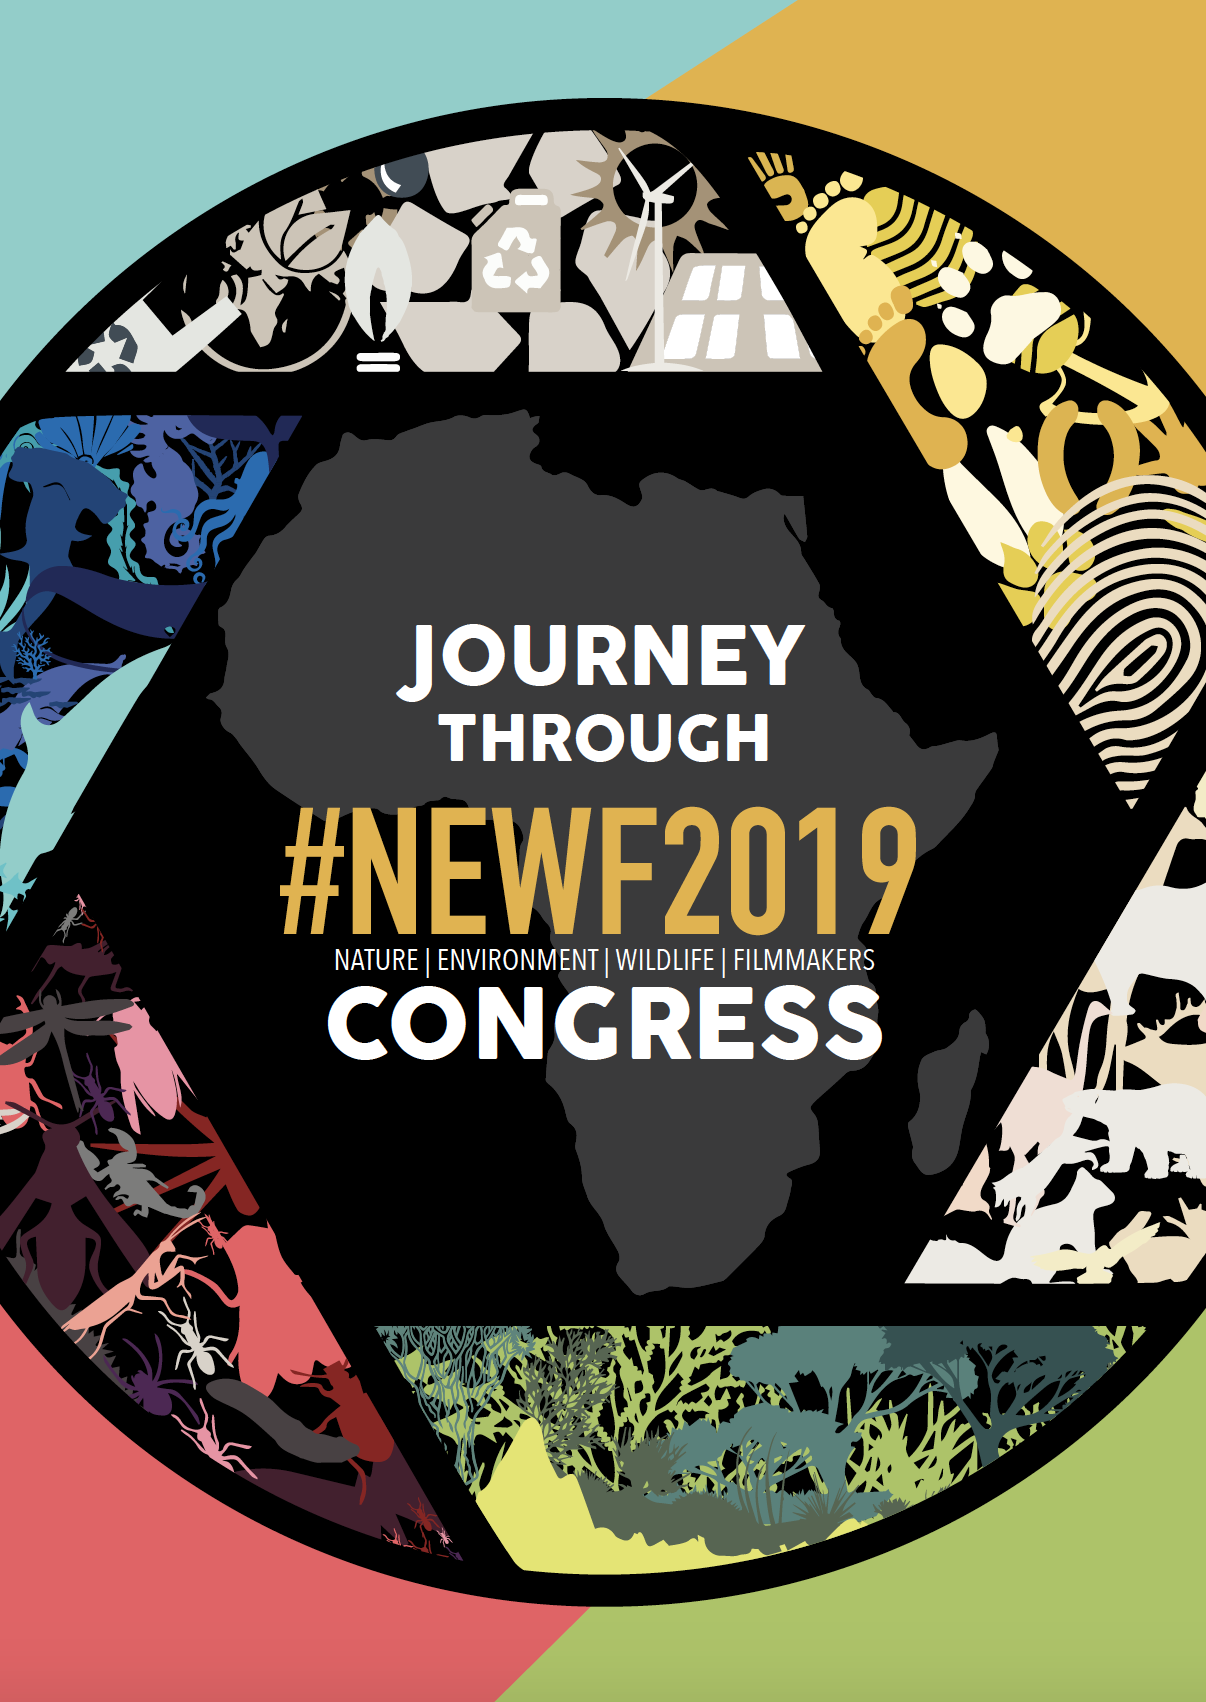 CLICK HERE  to read The Journey Through #NEWF2019